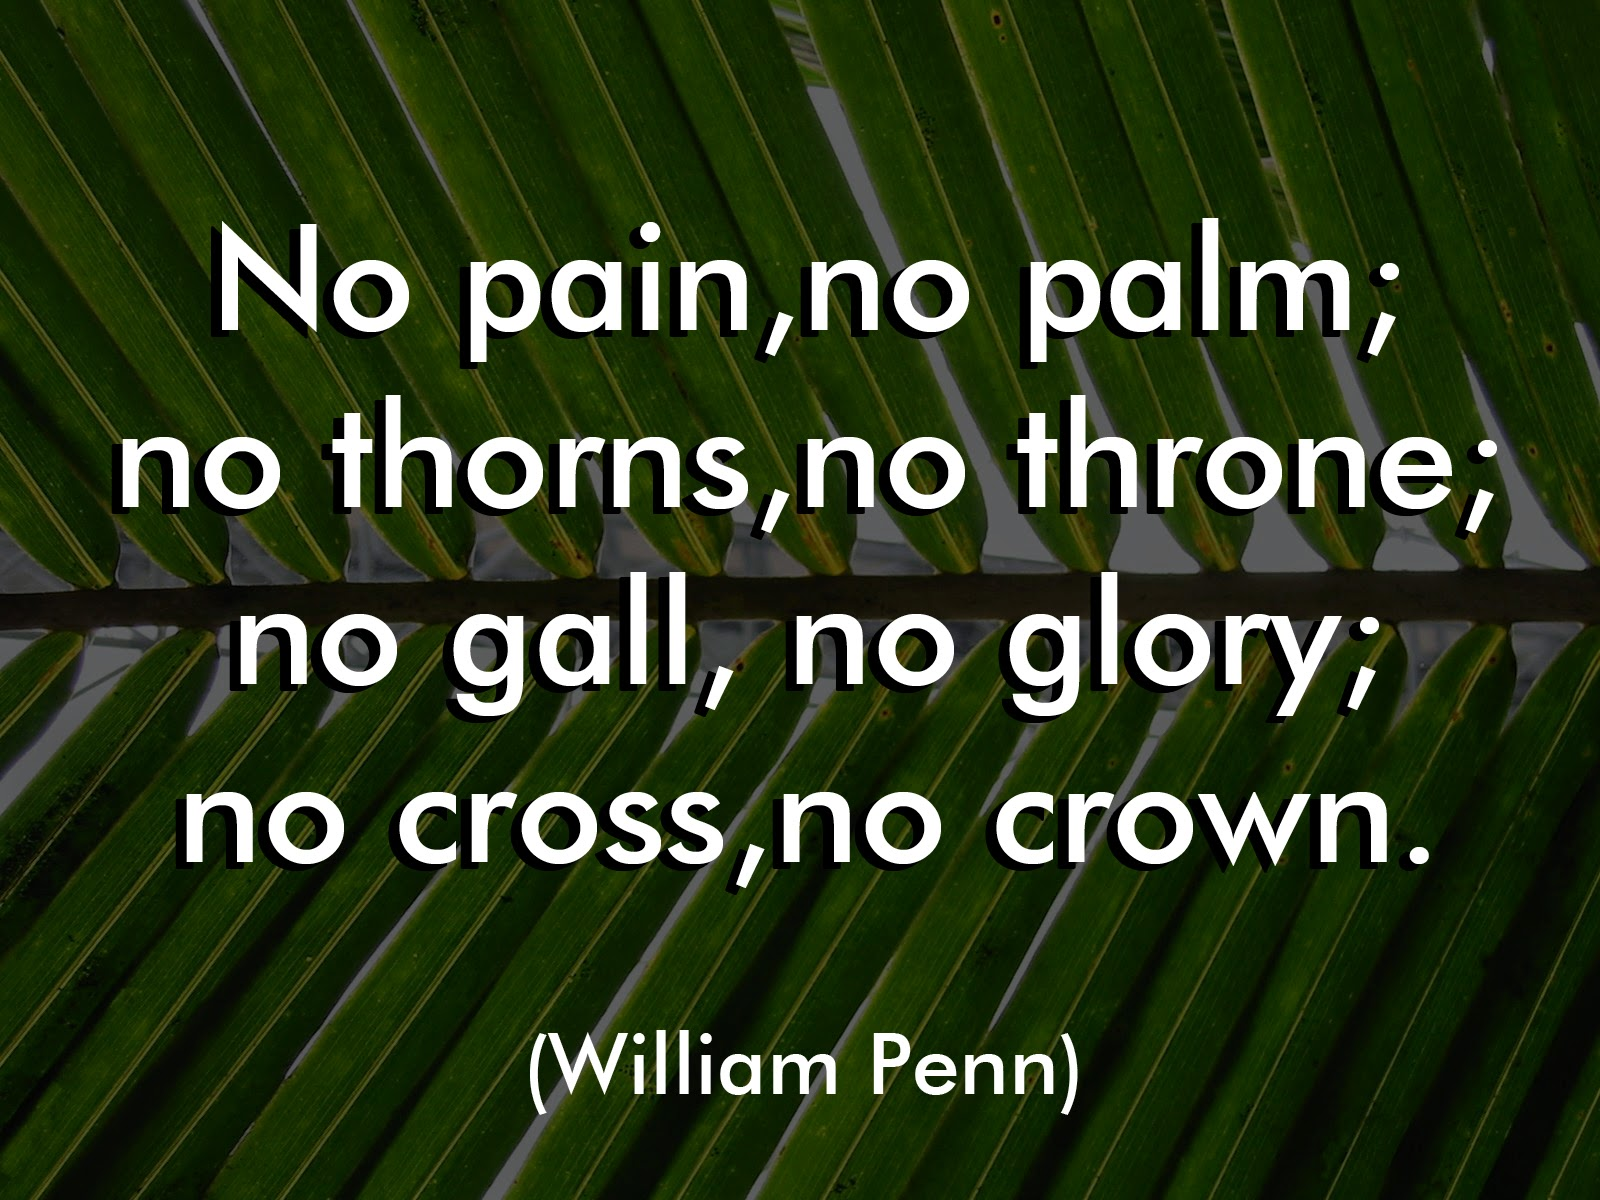 Palm Sunday: Quotes, Images And Wallpaper For Celebration